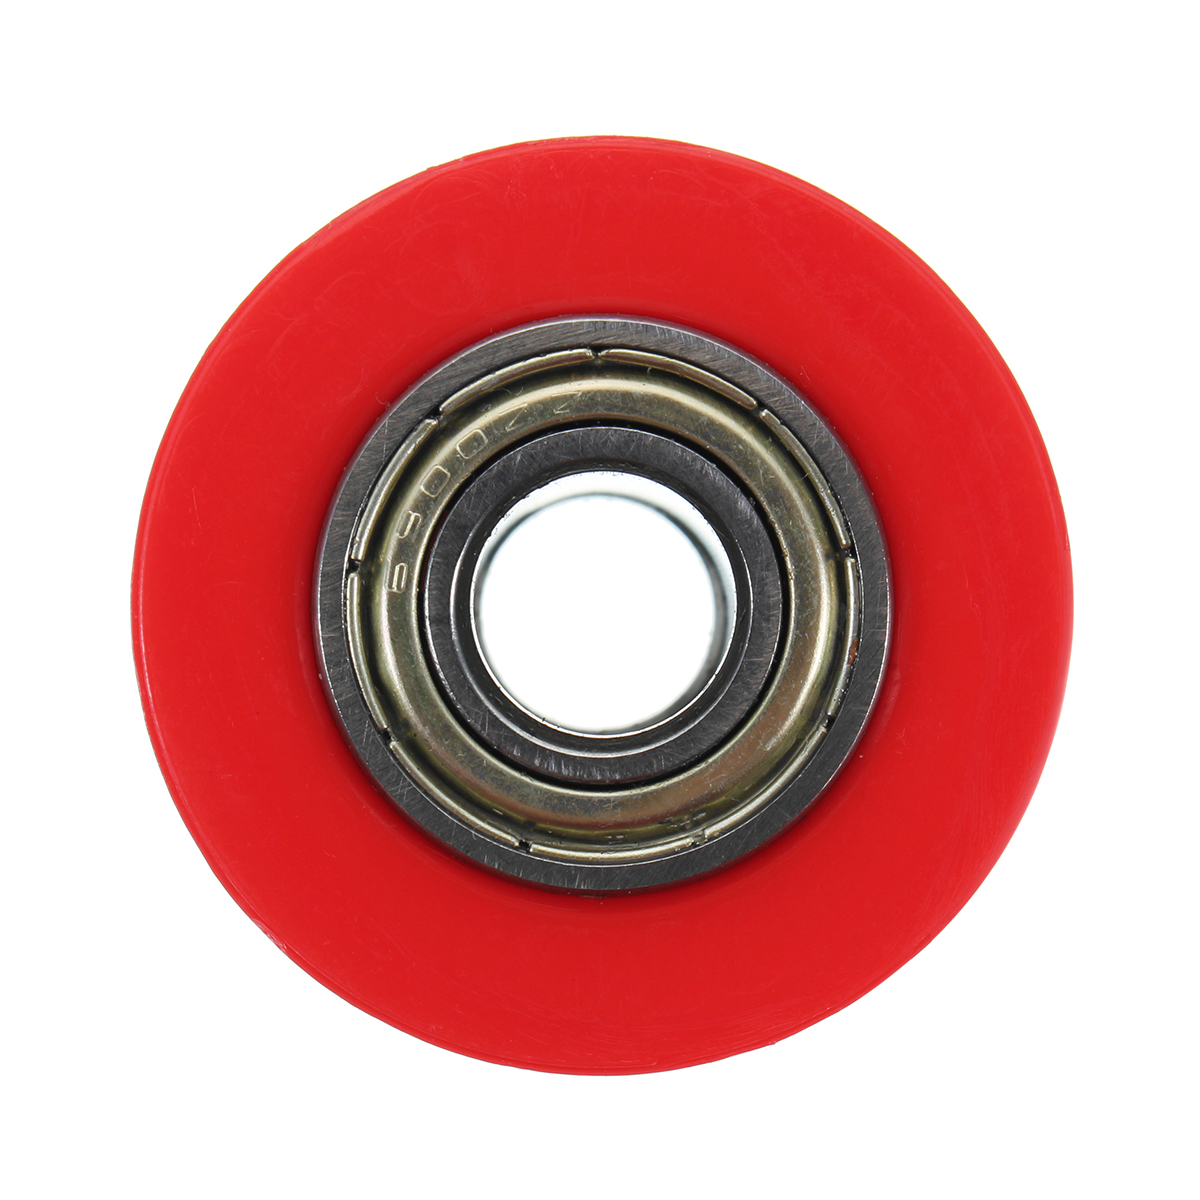 10mm Chain Roller Slider Tensioner Wheel Guide For Pit Dirt Mini Bike Motorcycle Black/Red/White